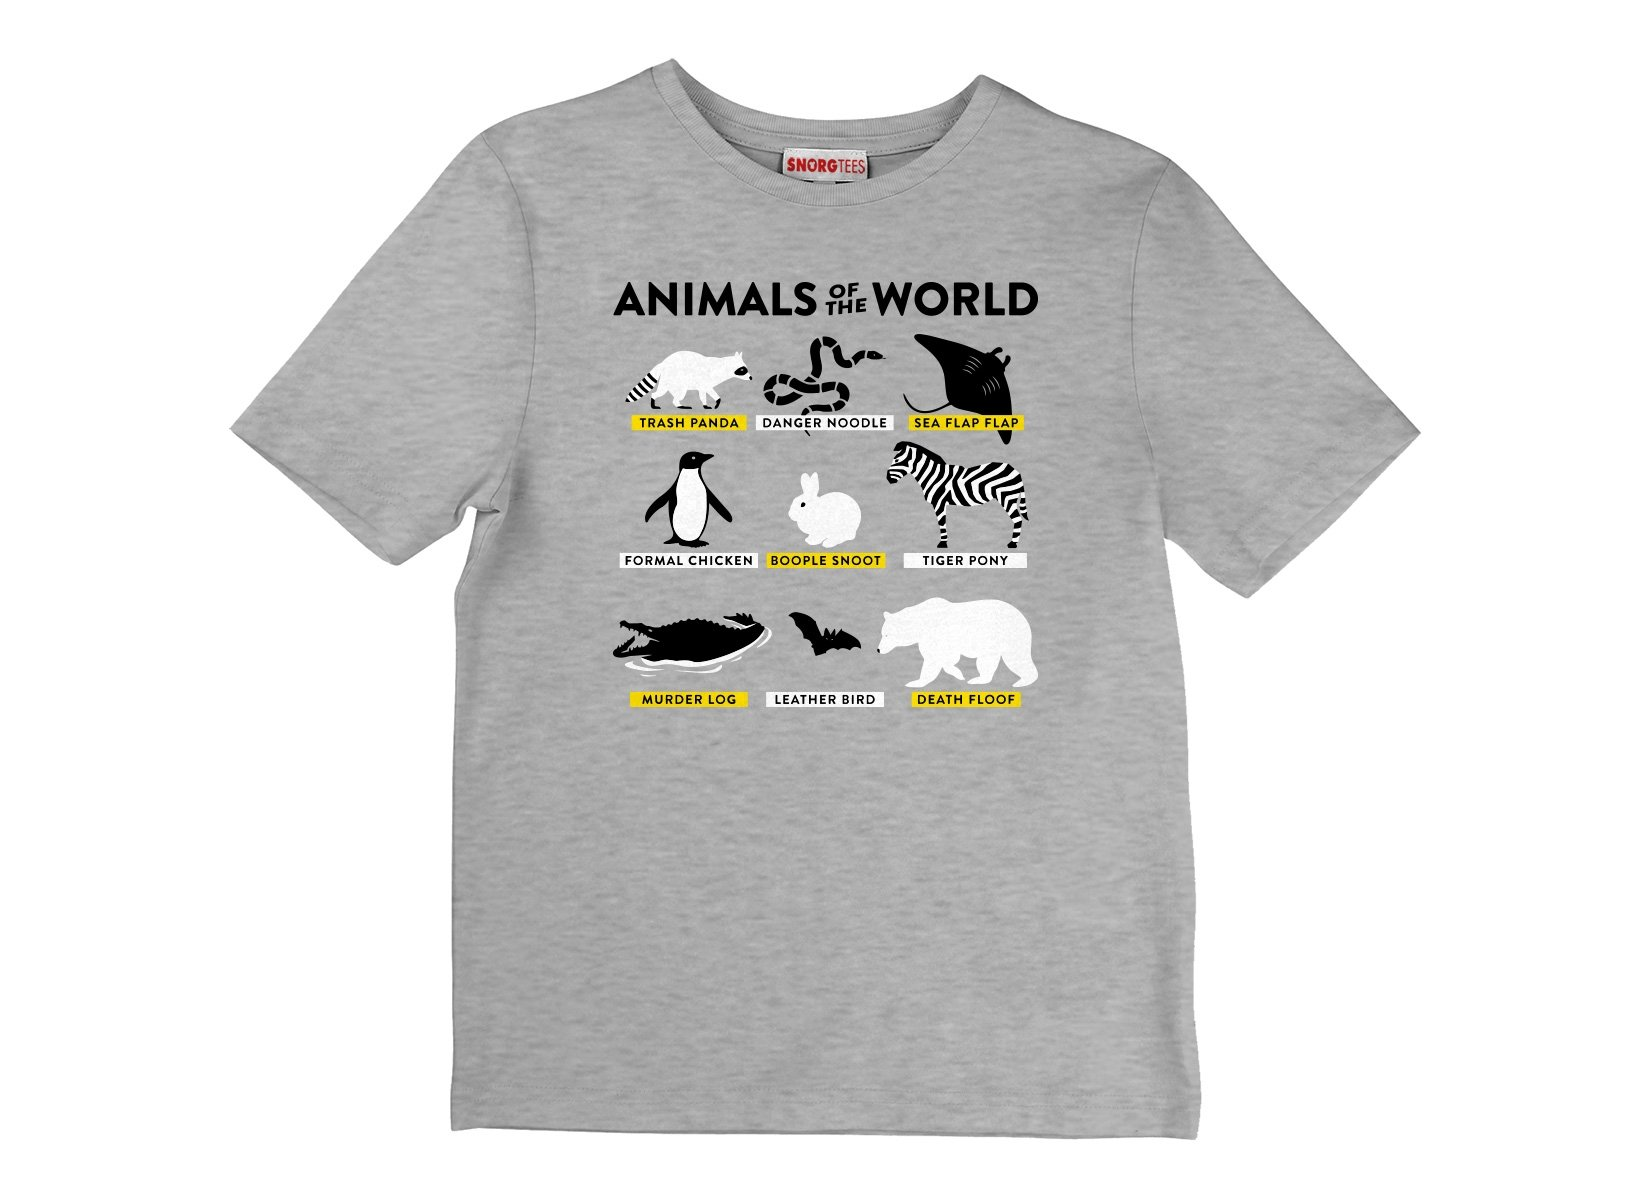 Animals Of The World on Kids T-Shirt